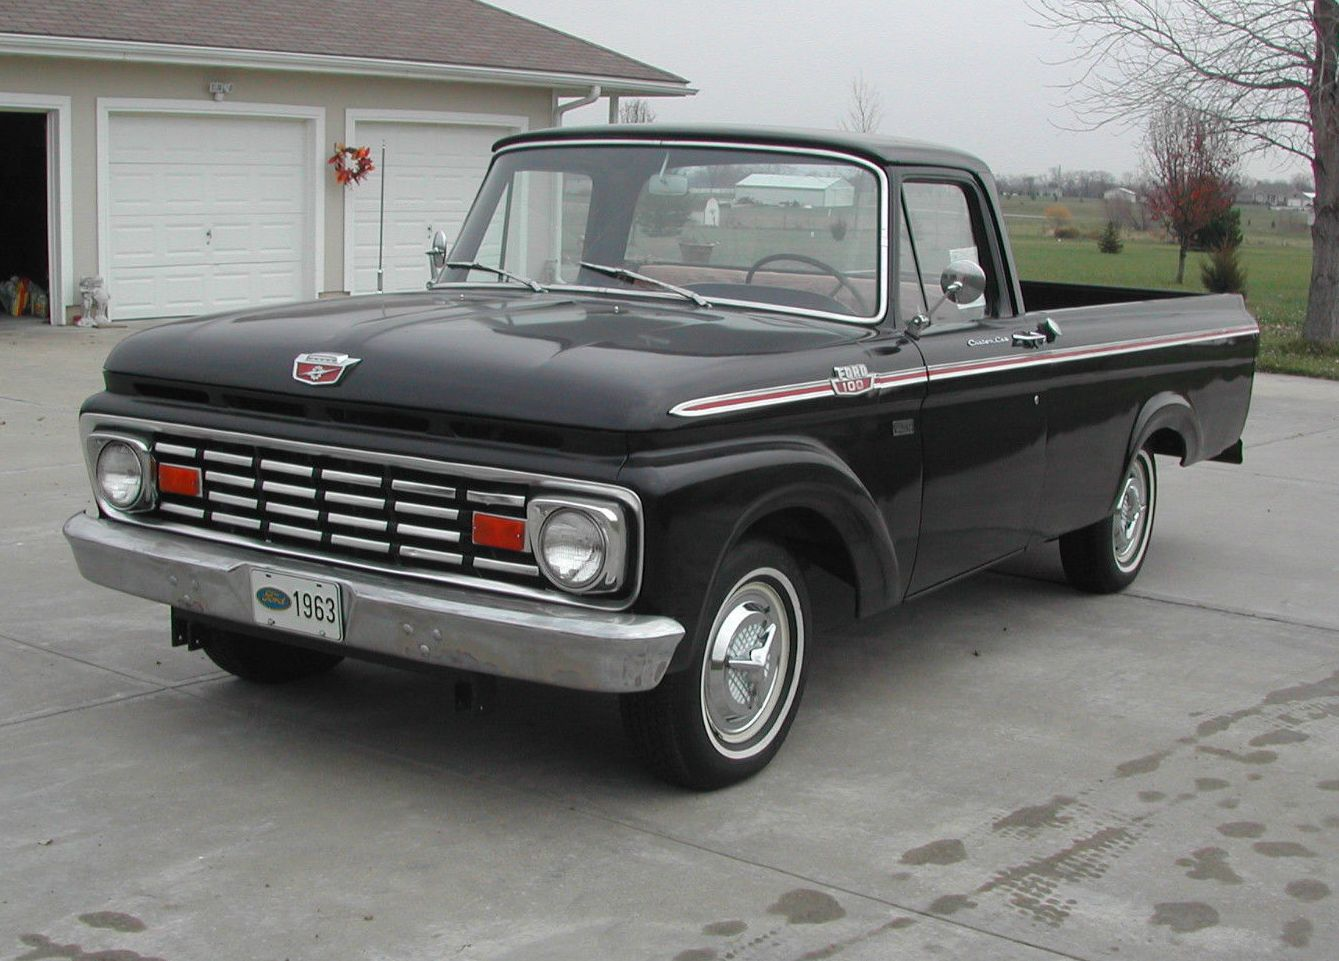 1963 Ford Truck F 100 Wiring Diagrams 65 Fairlane Diagram All American Classic Cars F100 Custom Cab Pickup Rh Allamericanclassiccars Blogspot Com 1962 Falcon